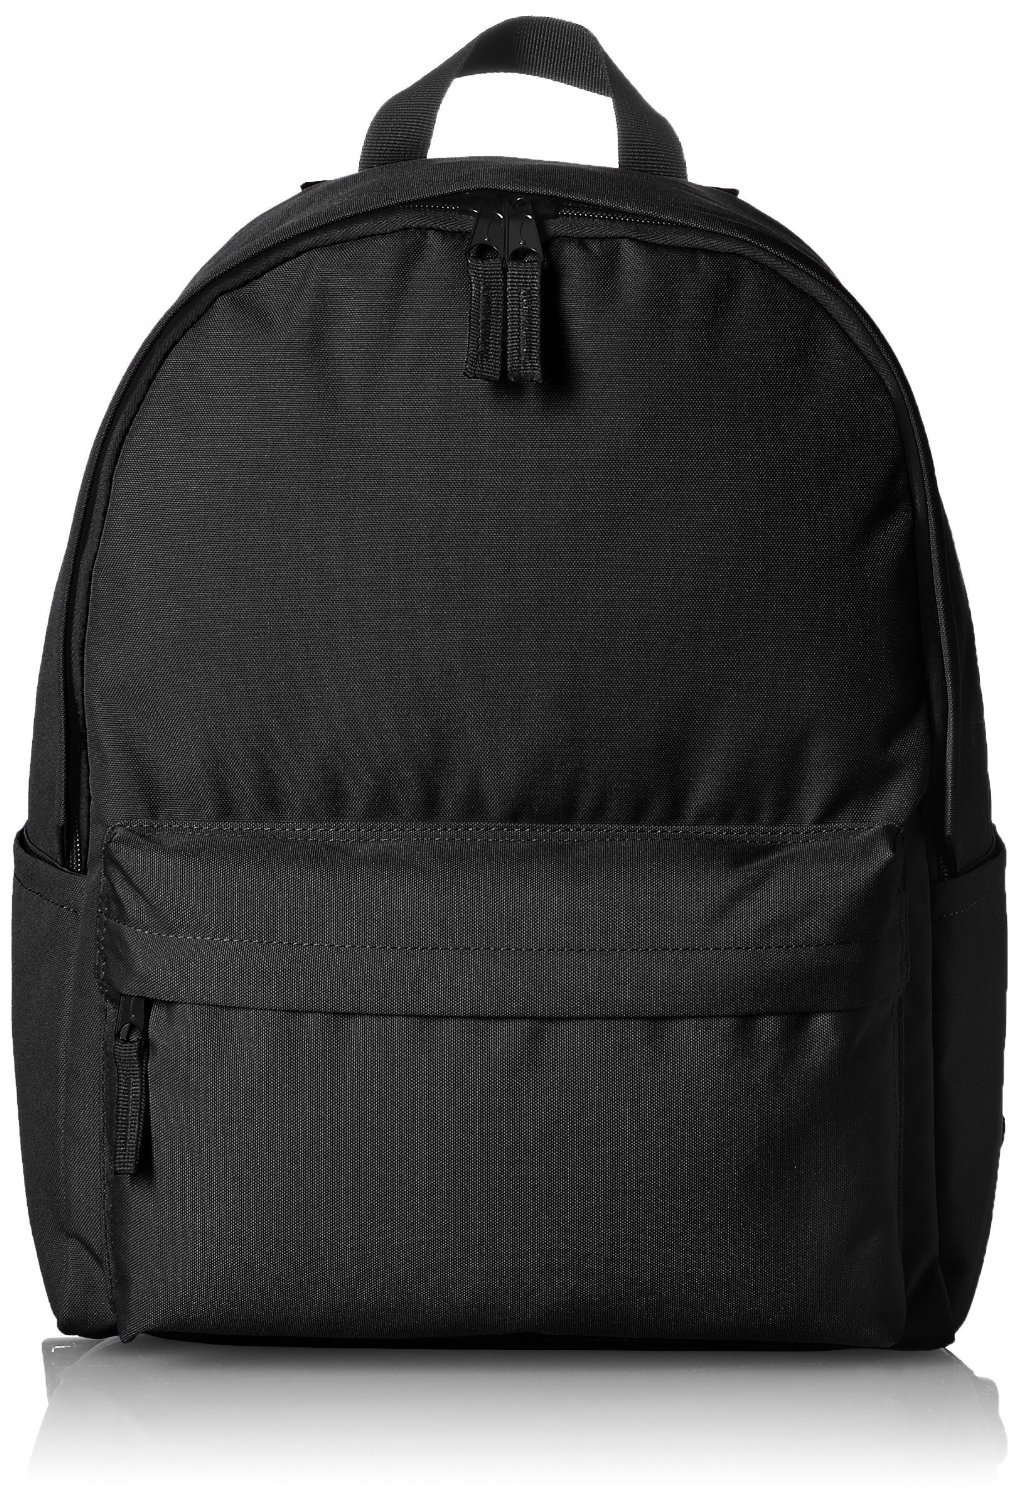 SwissGear SA1923 ScanSmart Backpack